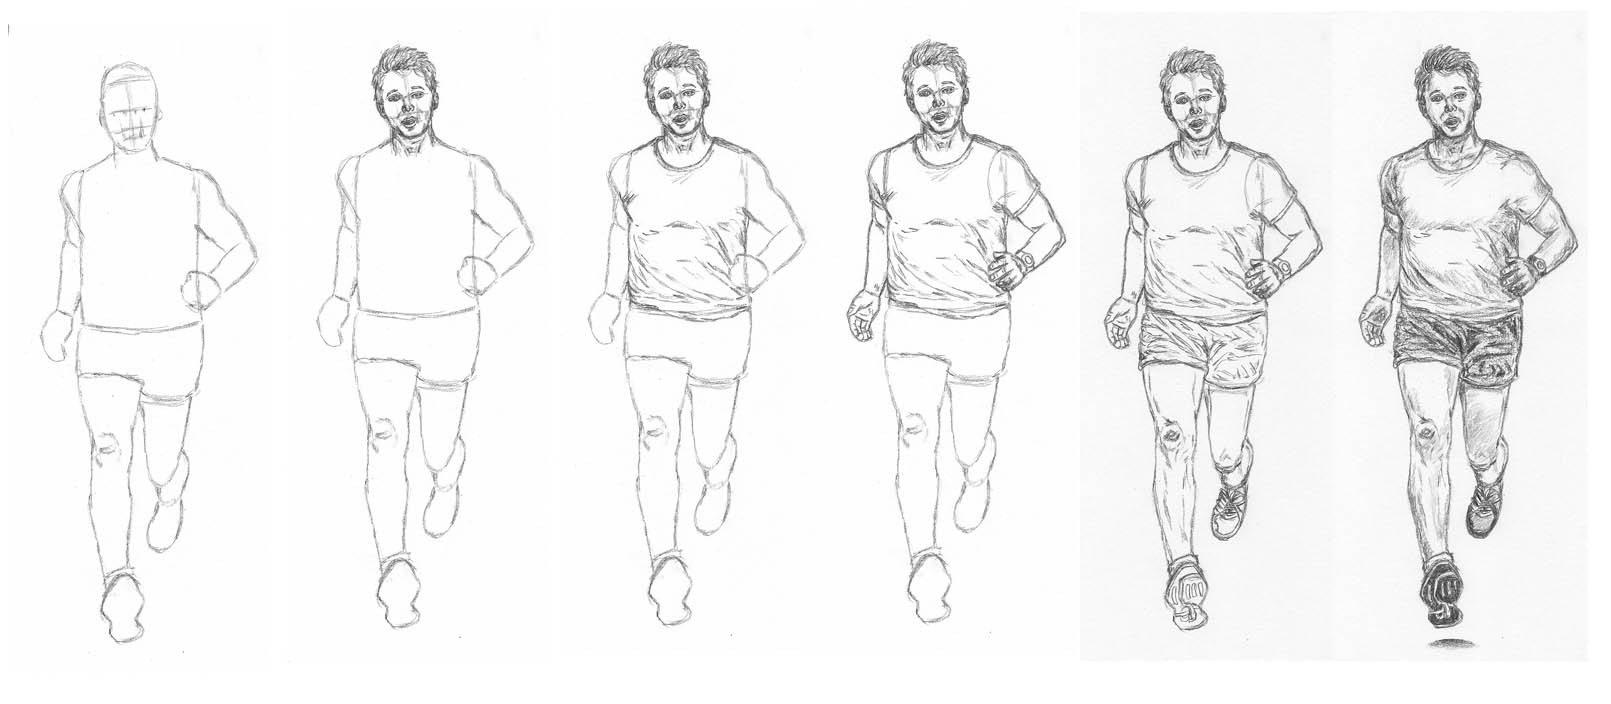 How to draw a man running lets draw people